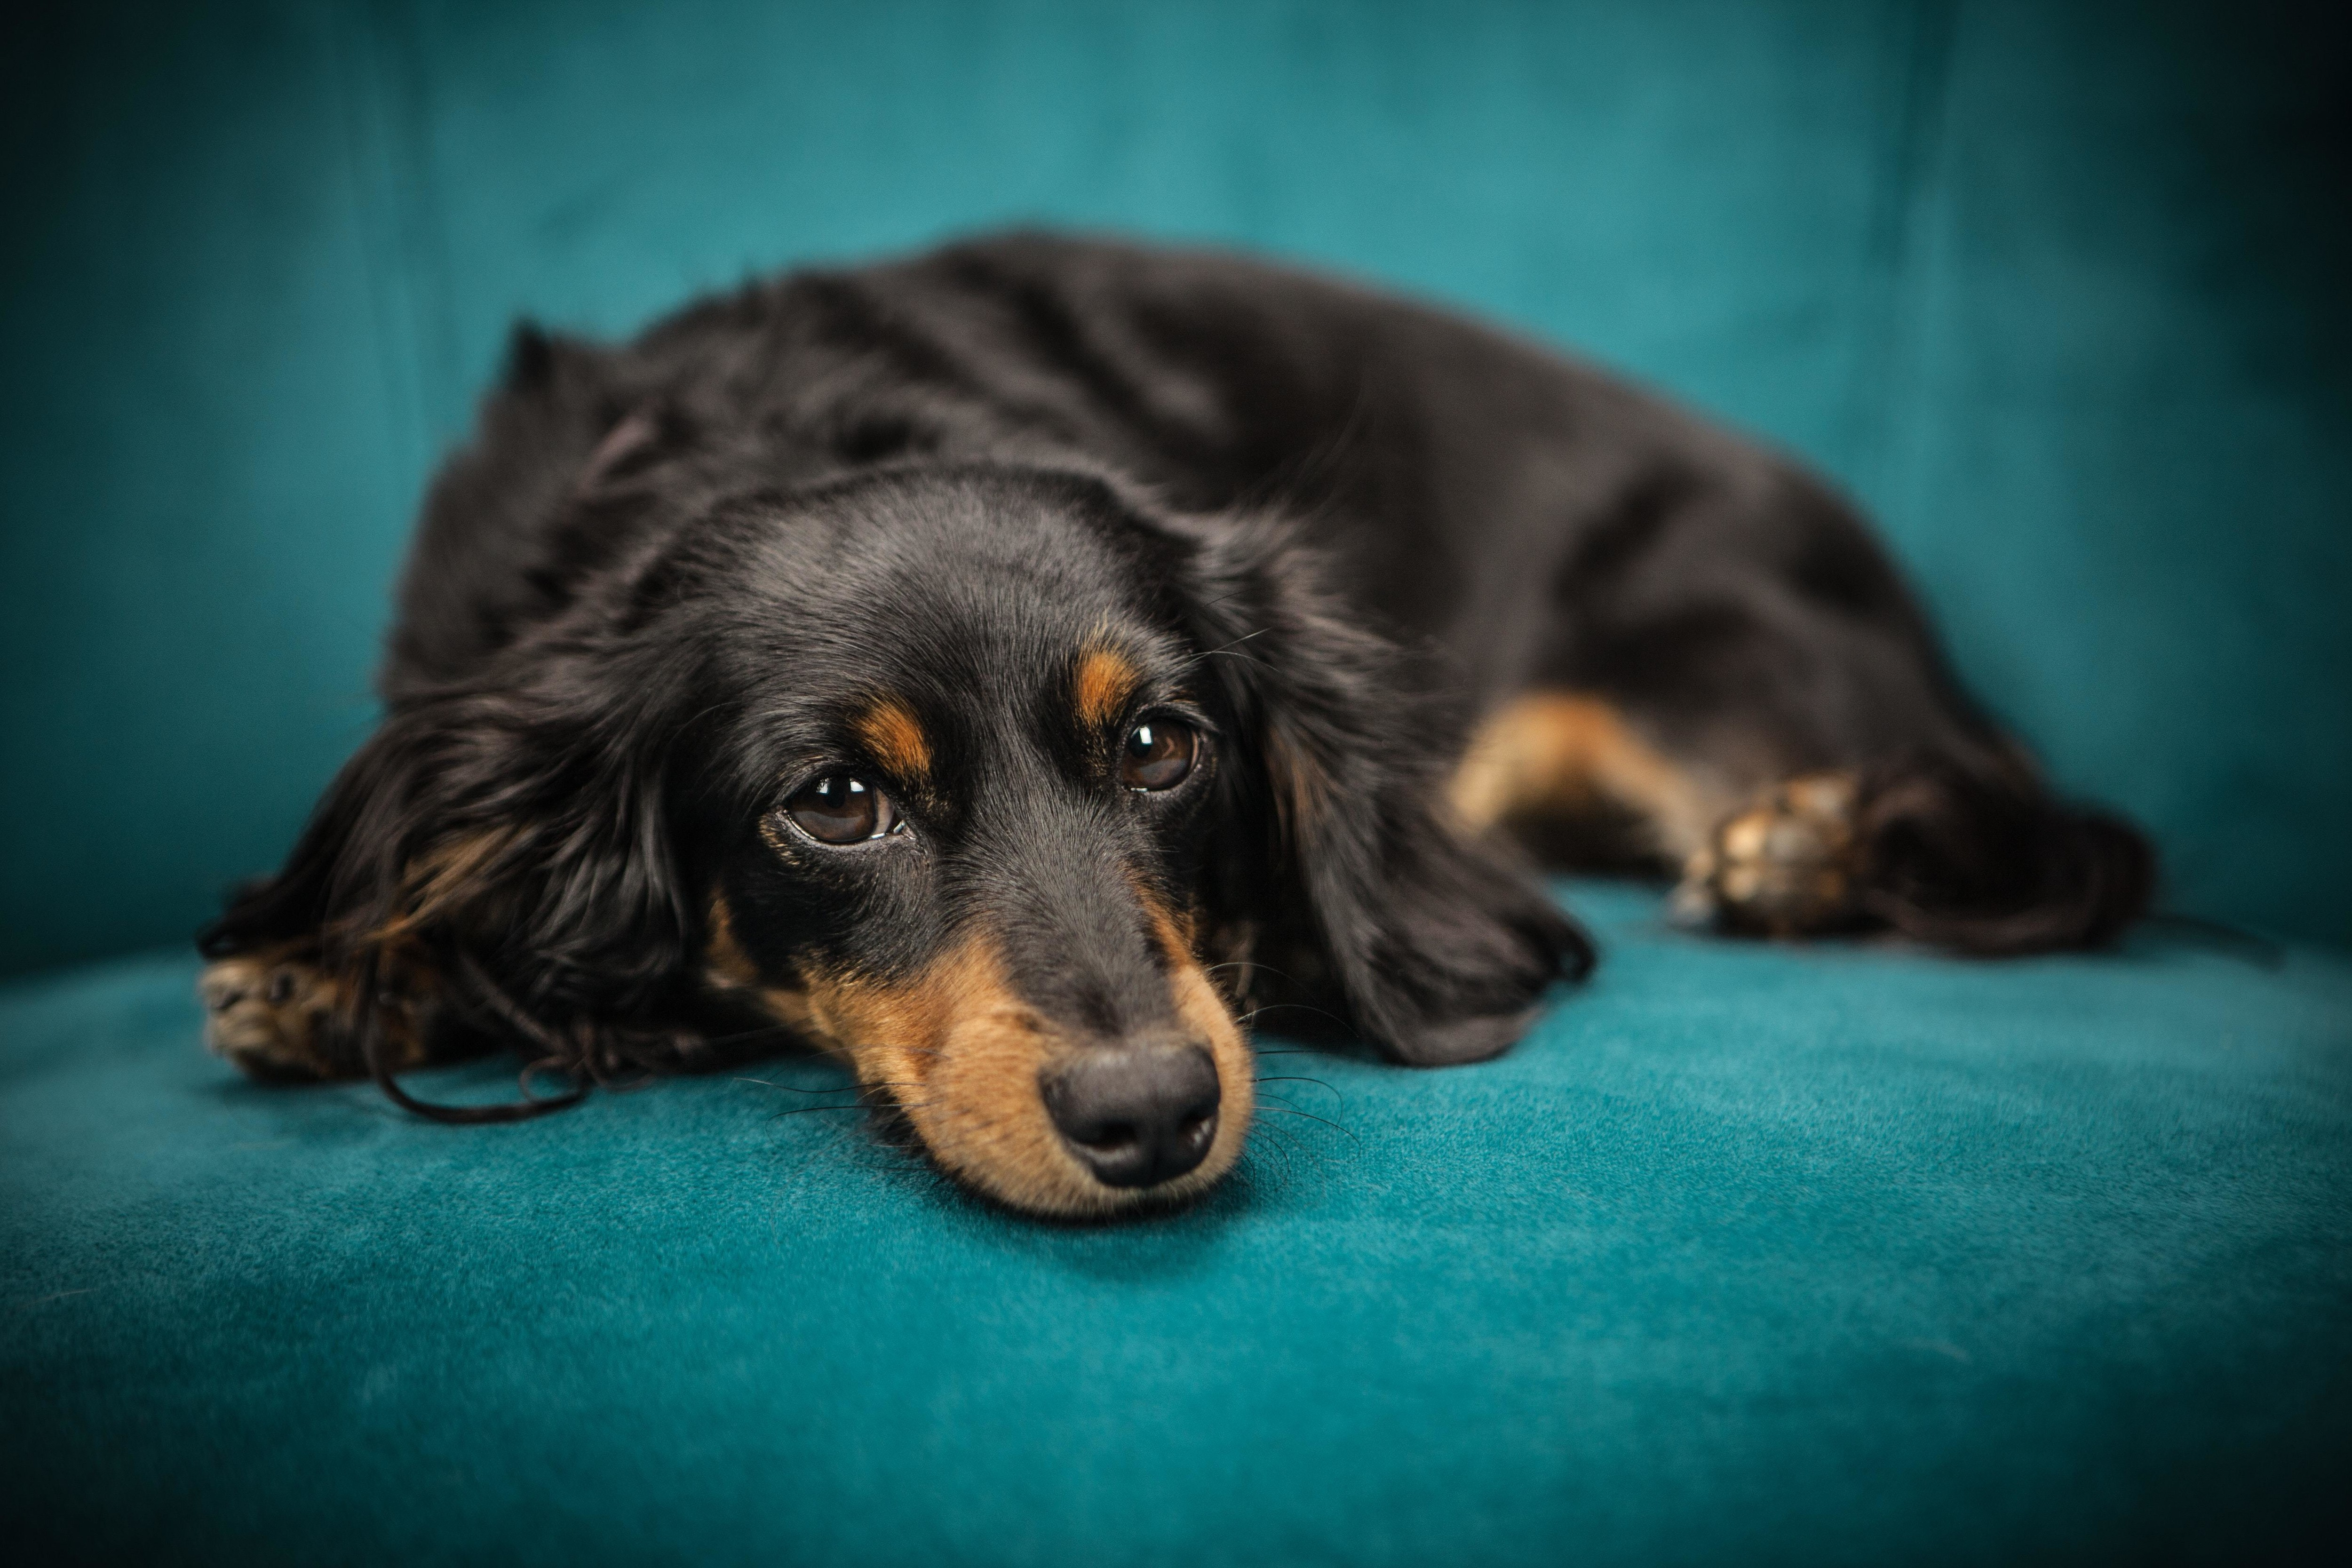 Dachshund - Here Are 30 Low-Key Dog Breeds Perfect For Retirees ...